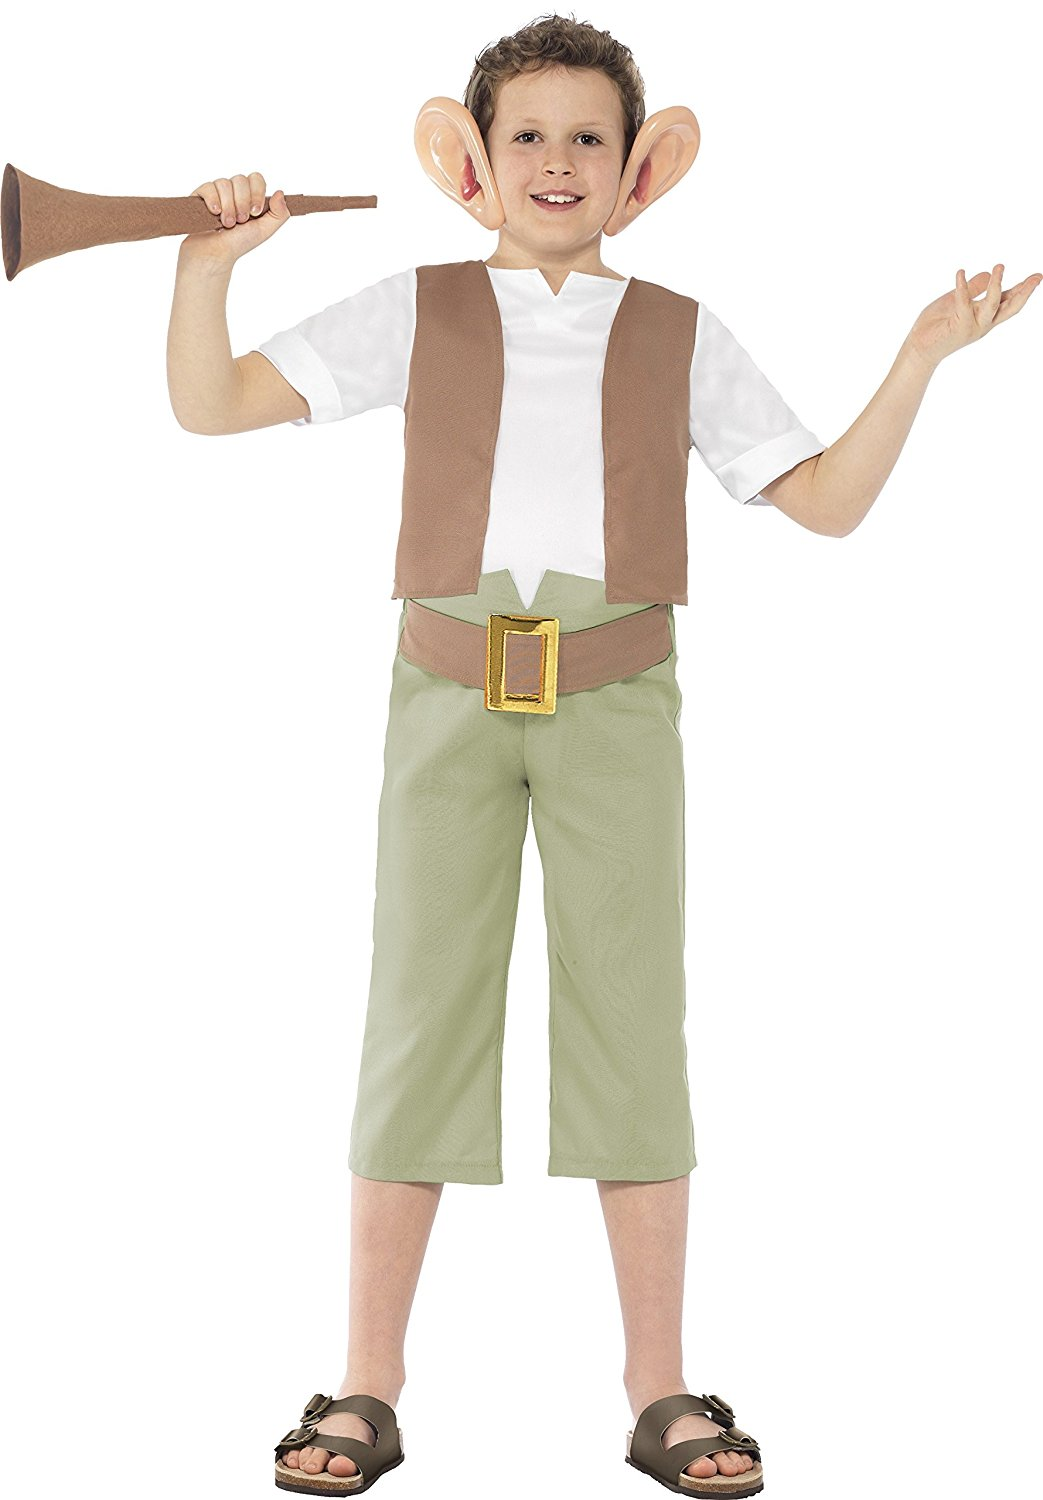 Roald Dahl Big friendly giant costume 27145